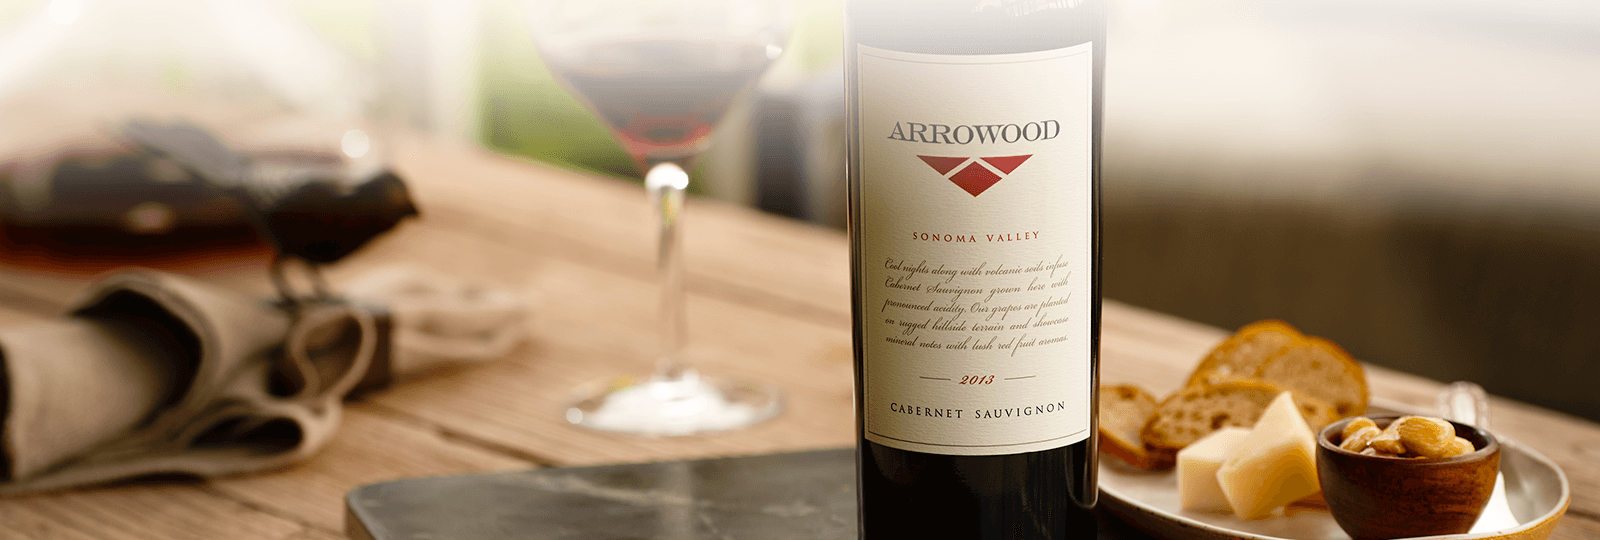 Arrowood wine on table next to cheese pairing